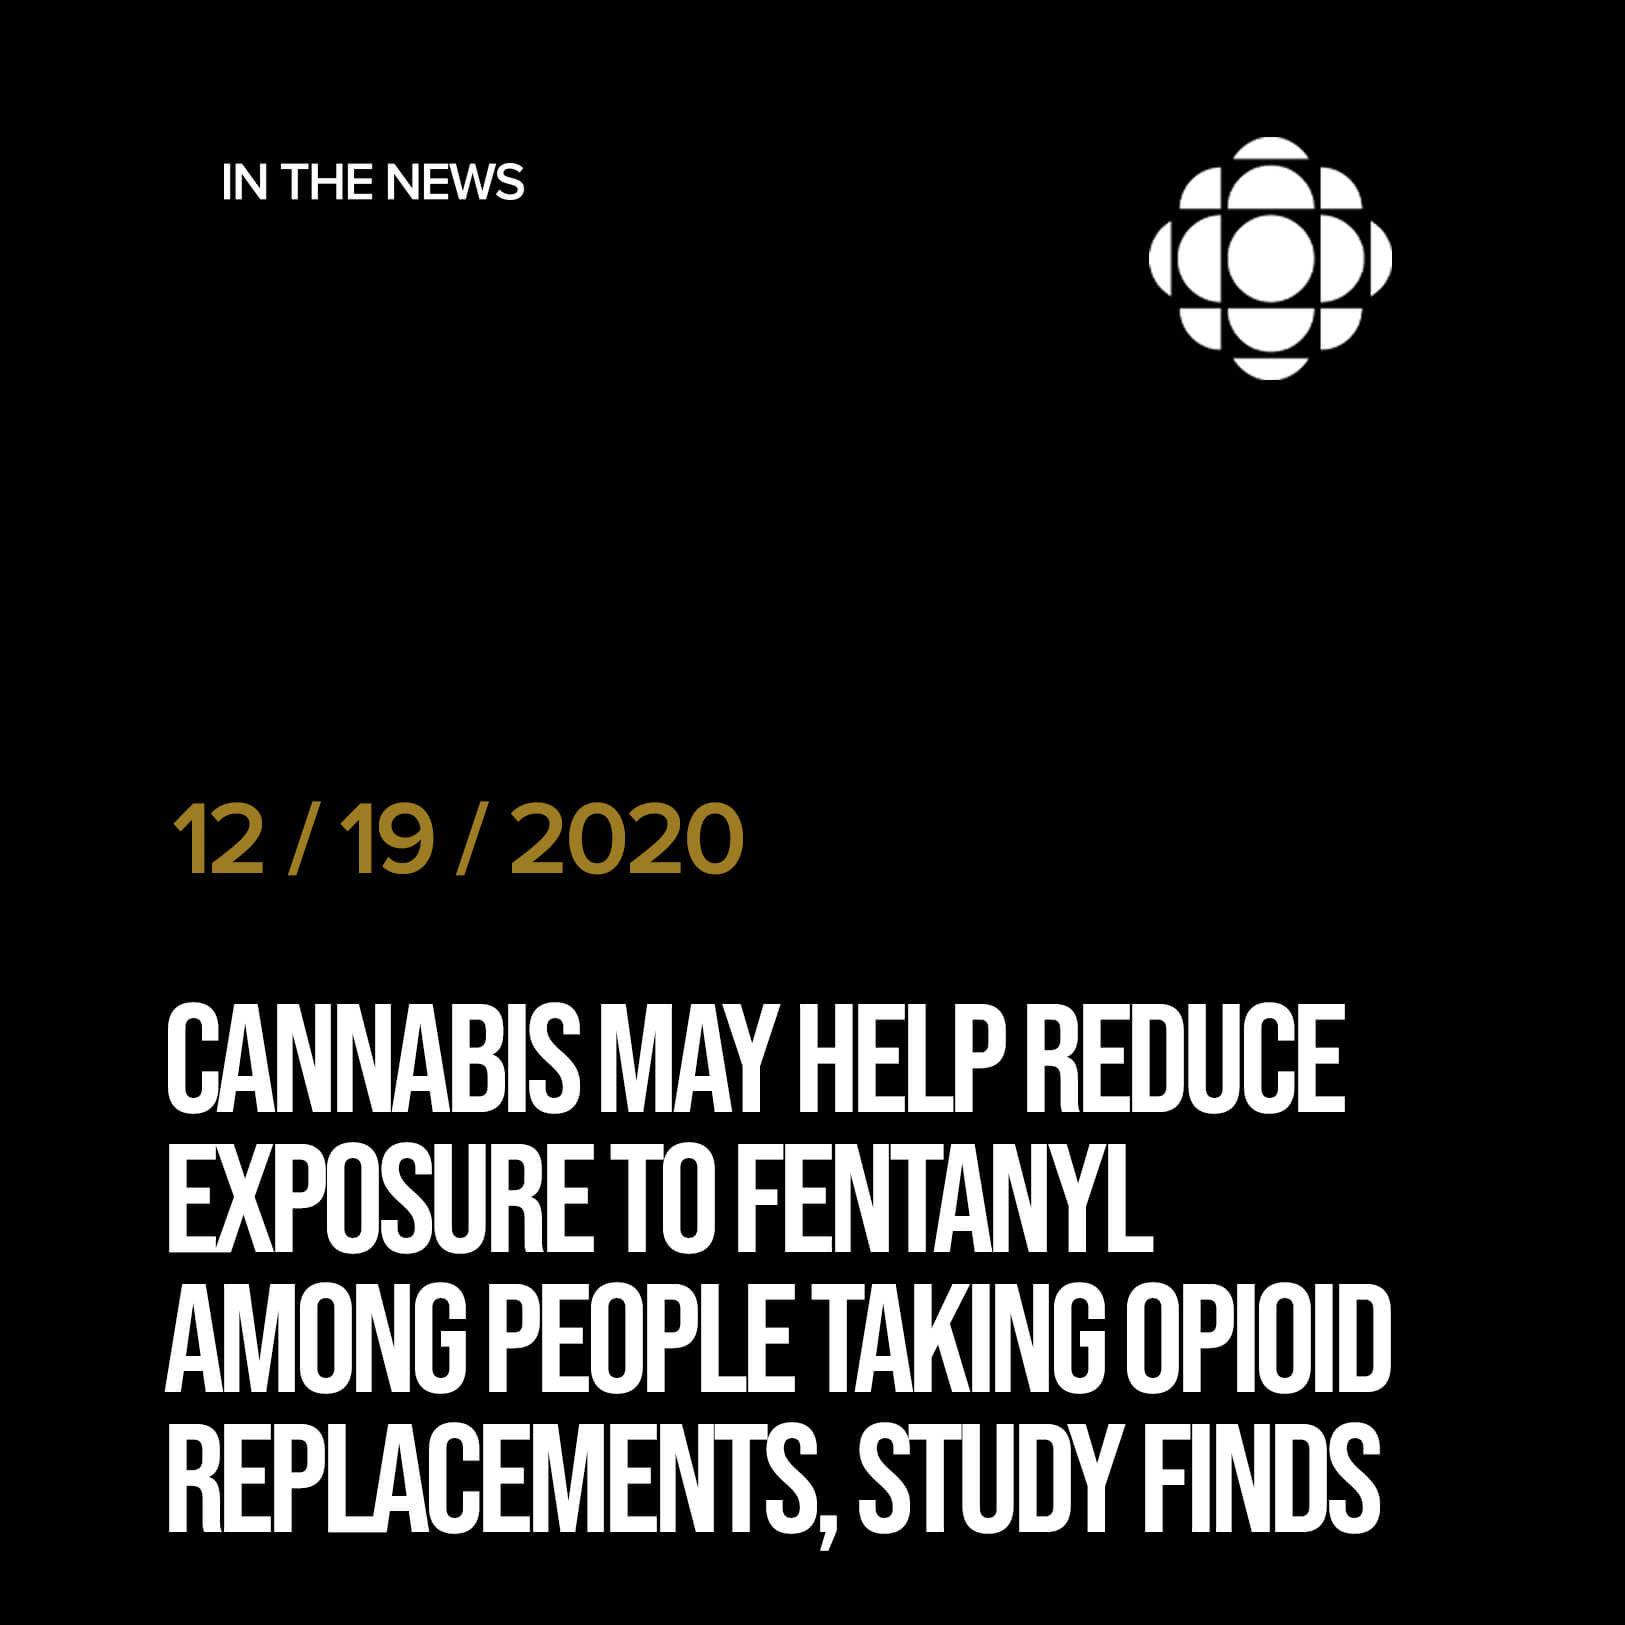 Cannabis may help reduce exposure to fentanyl among people taking opioid replacements, study finds